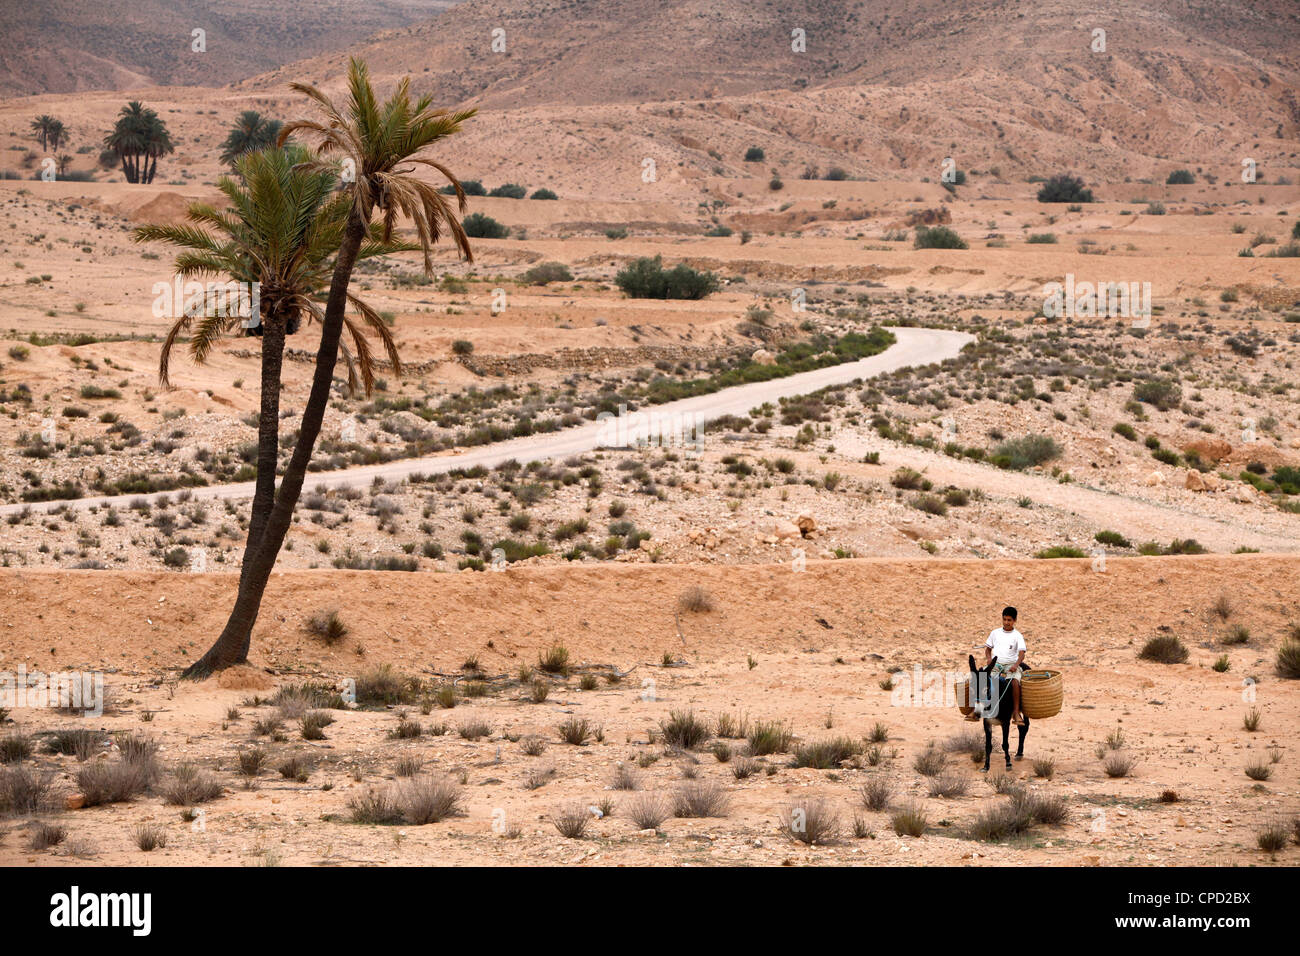 Boy on a donkey in a parched landscape, Gabes, Tunisia, North Africa, Africa - Stock Image